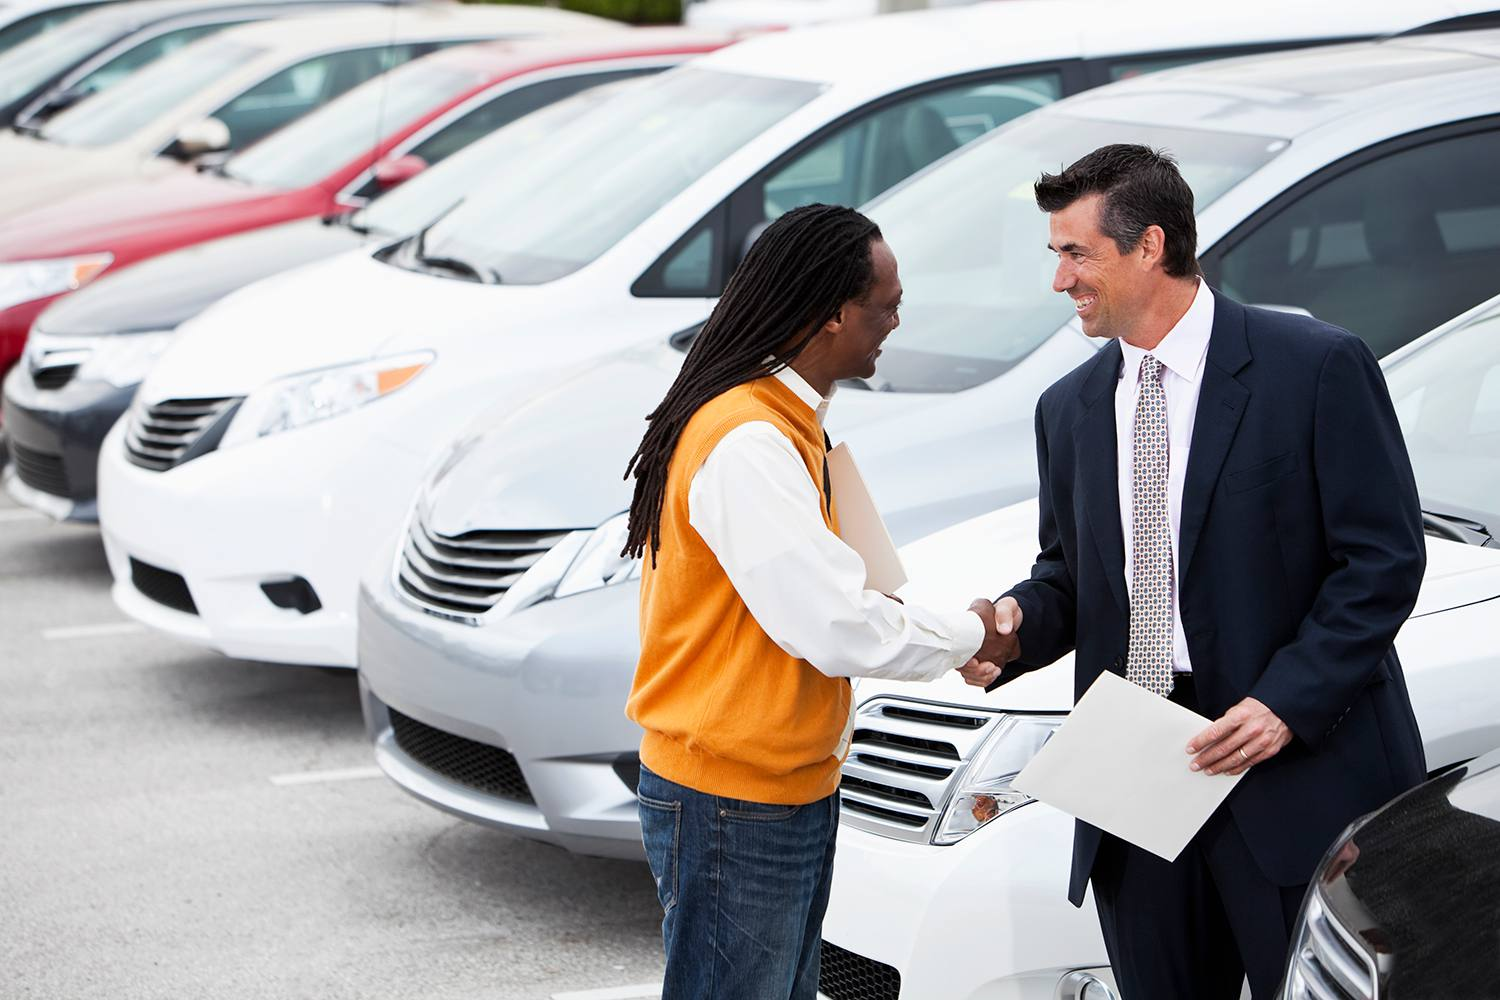 Car Leases: Should You Take the Purchase Option?